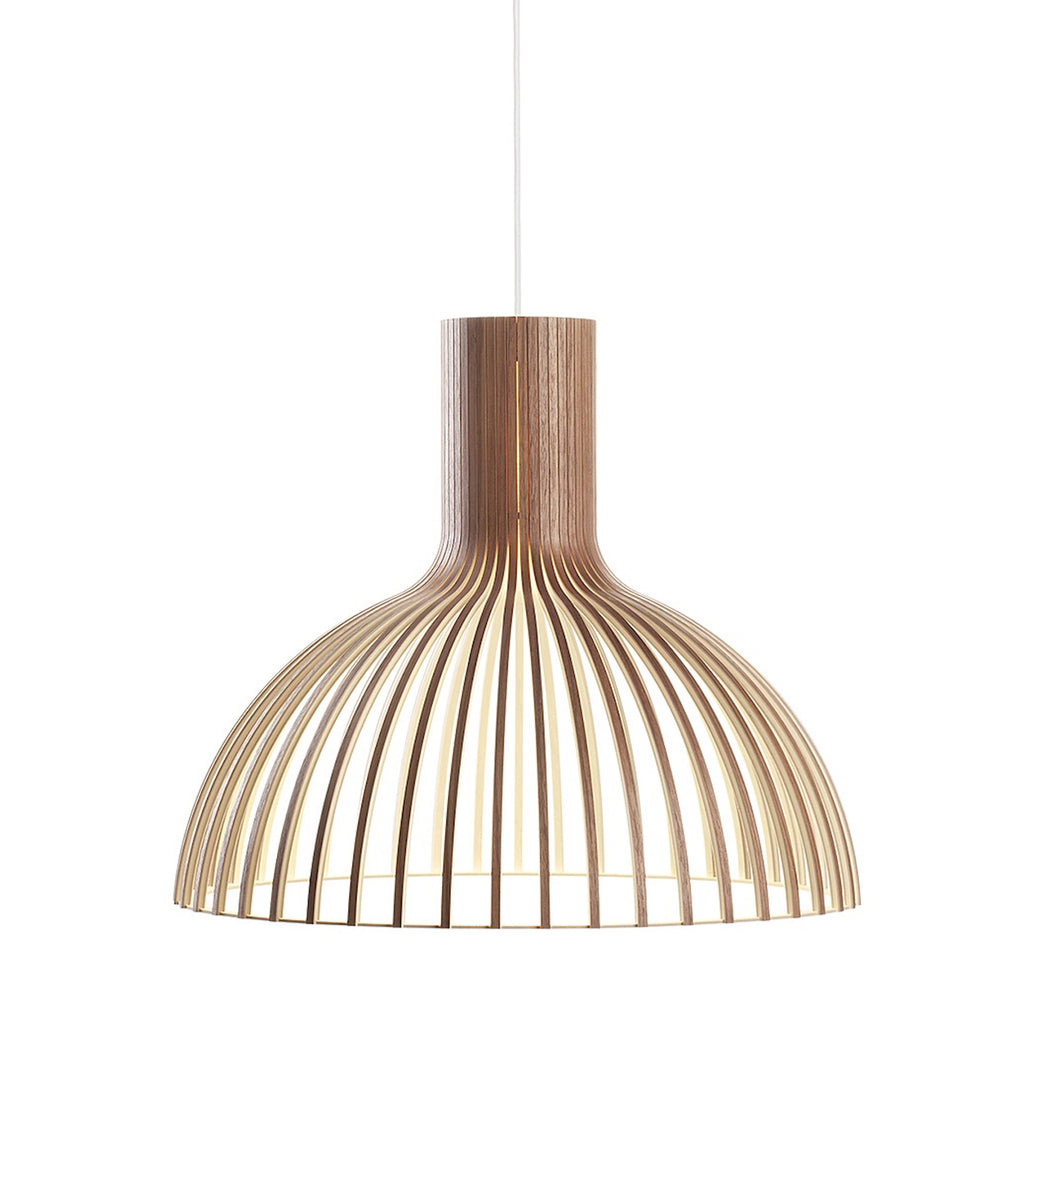 Walnut High end ceiling lights Victo 4250 1